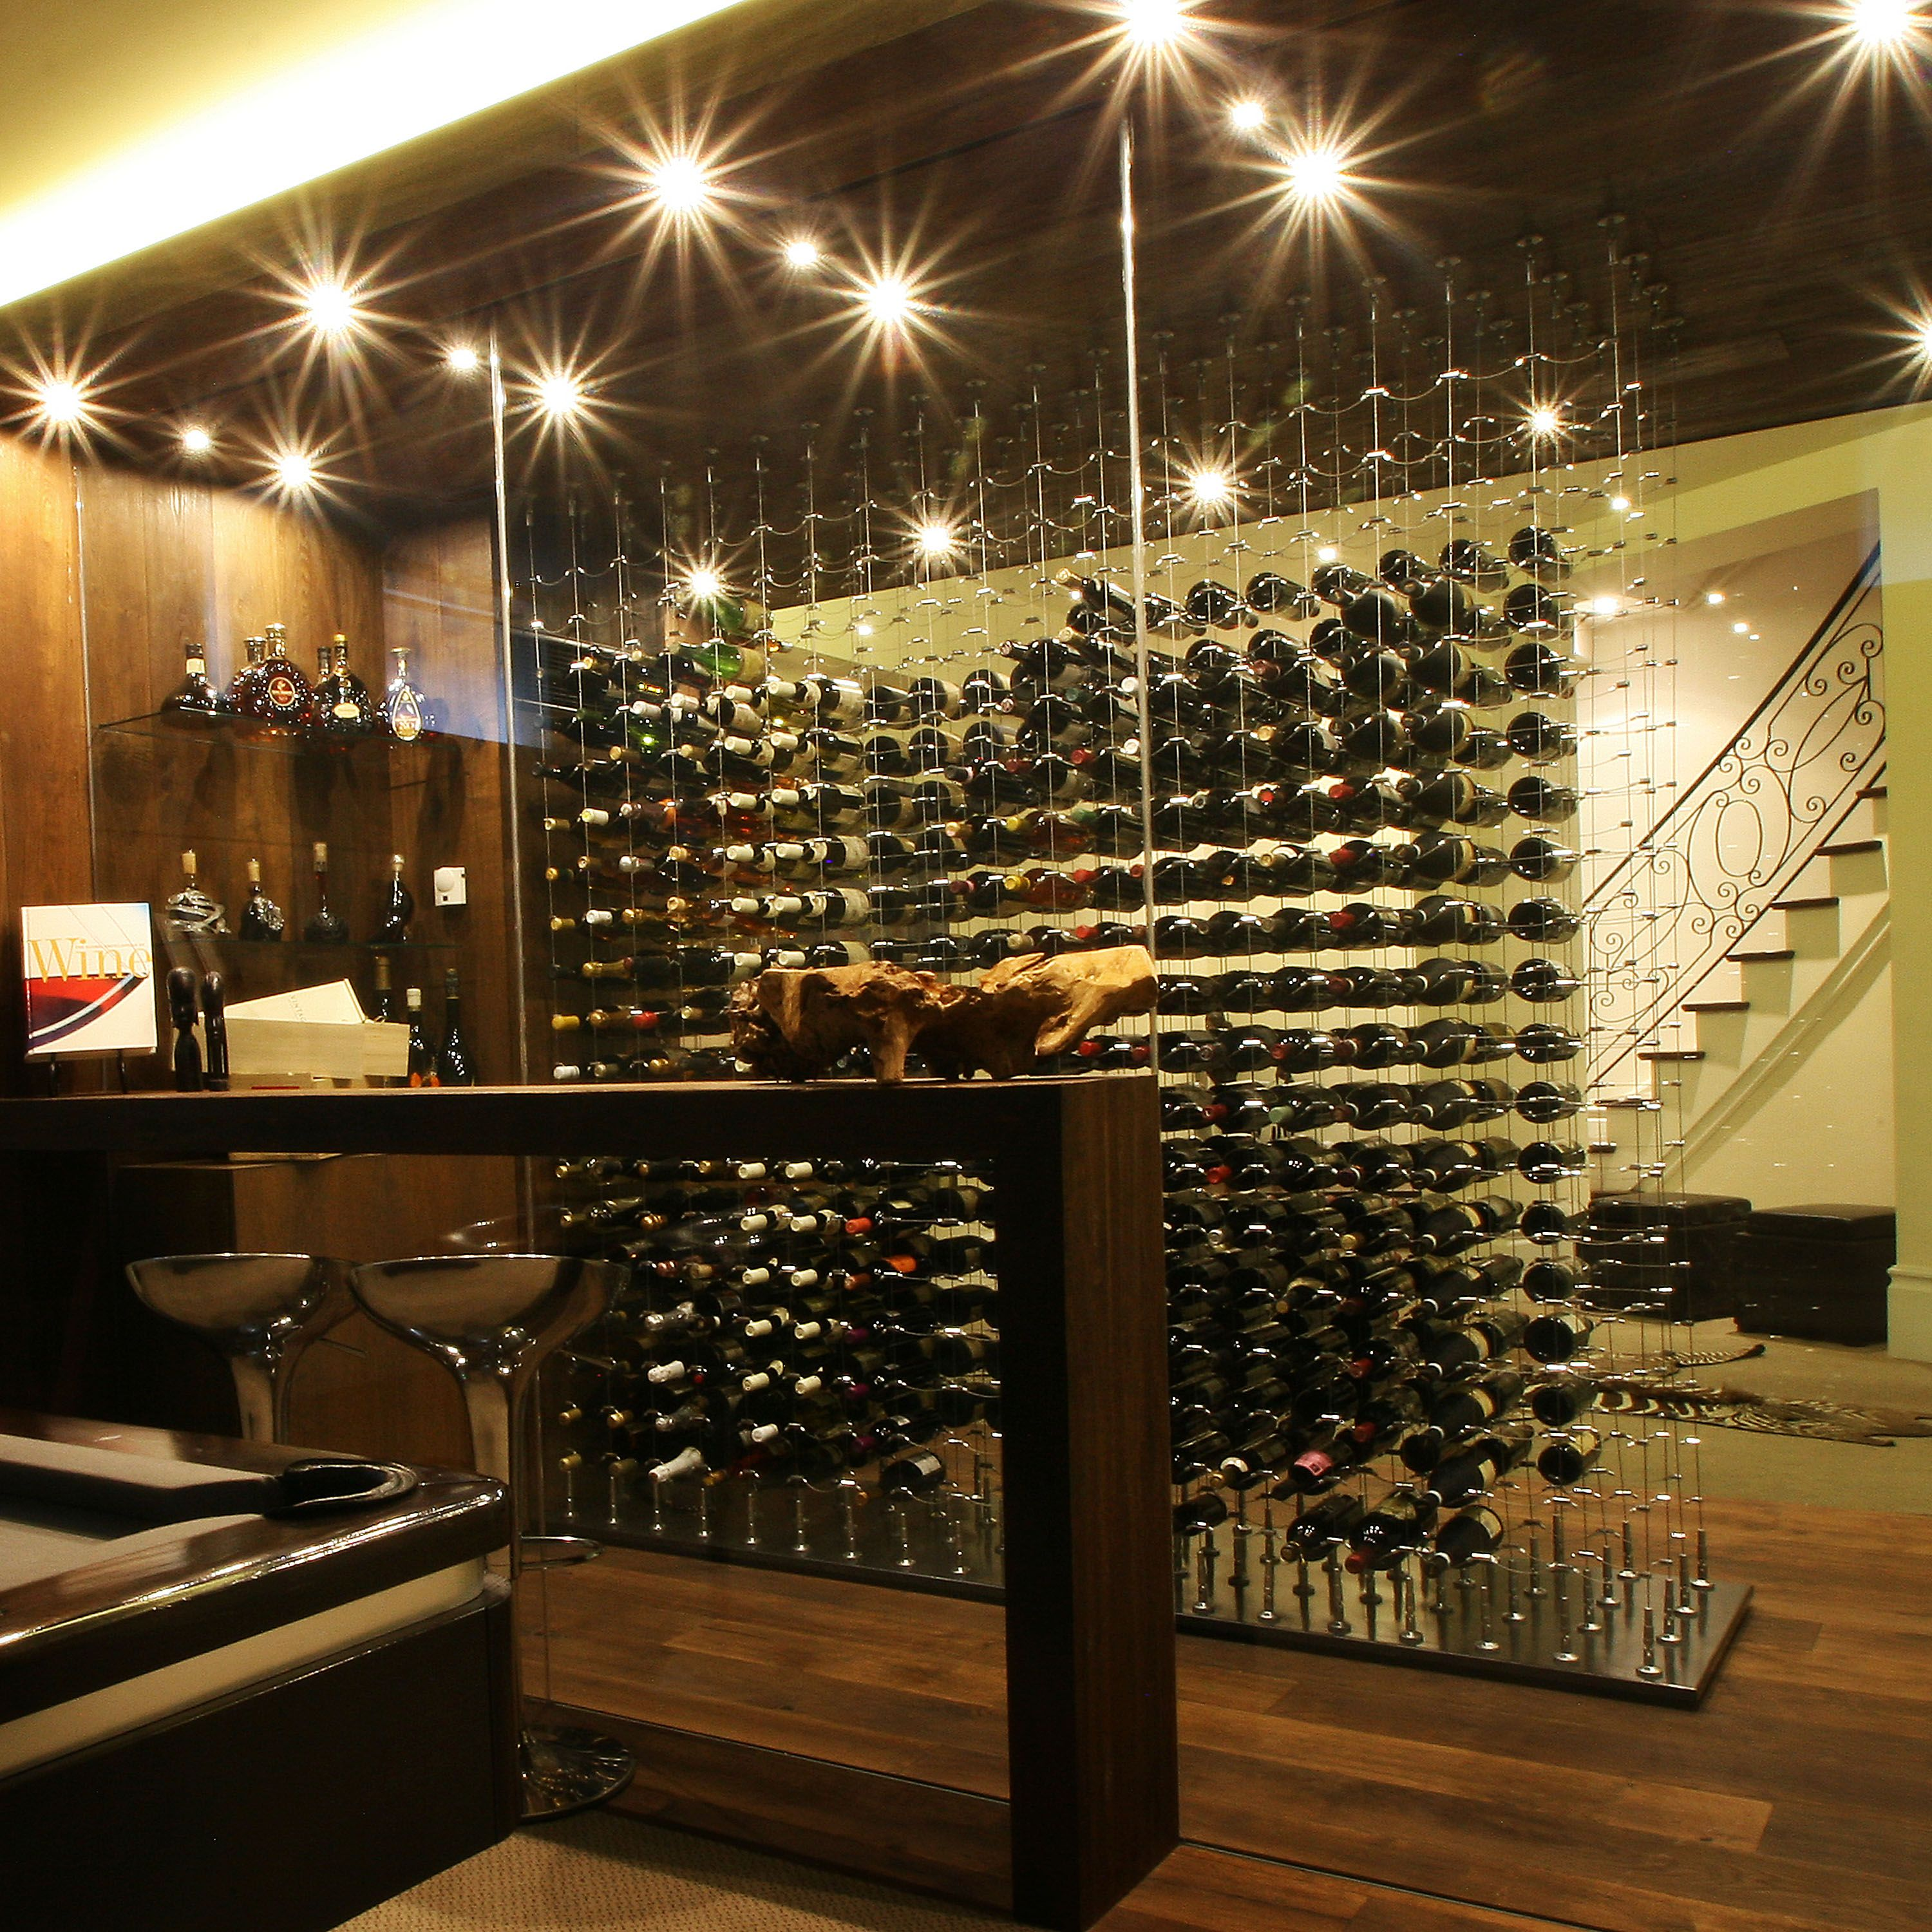 Glass enclosed wine cellar - Glass Enclosed Custom Wine Cellar Featuring Cable Wine System